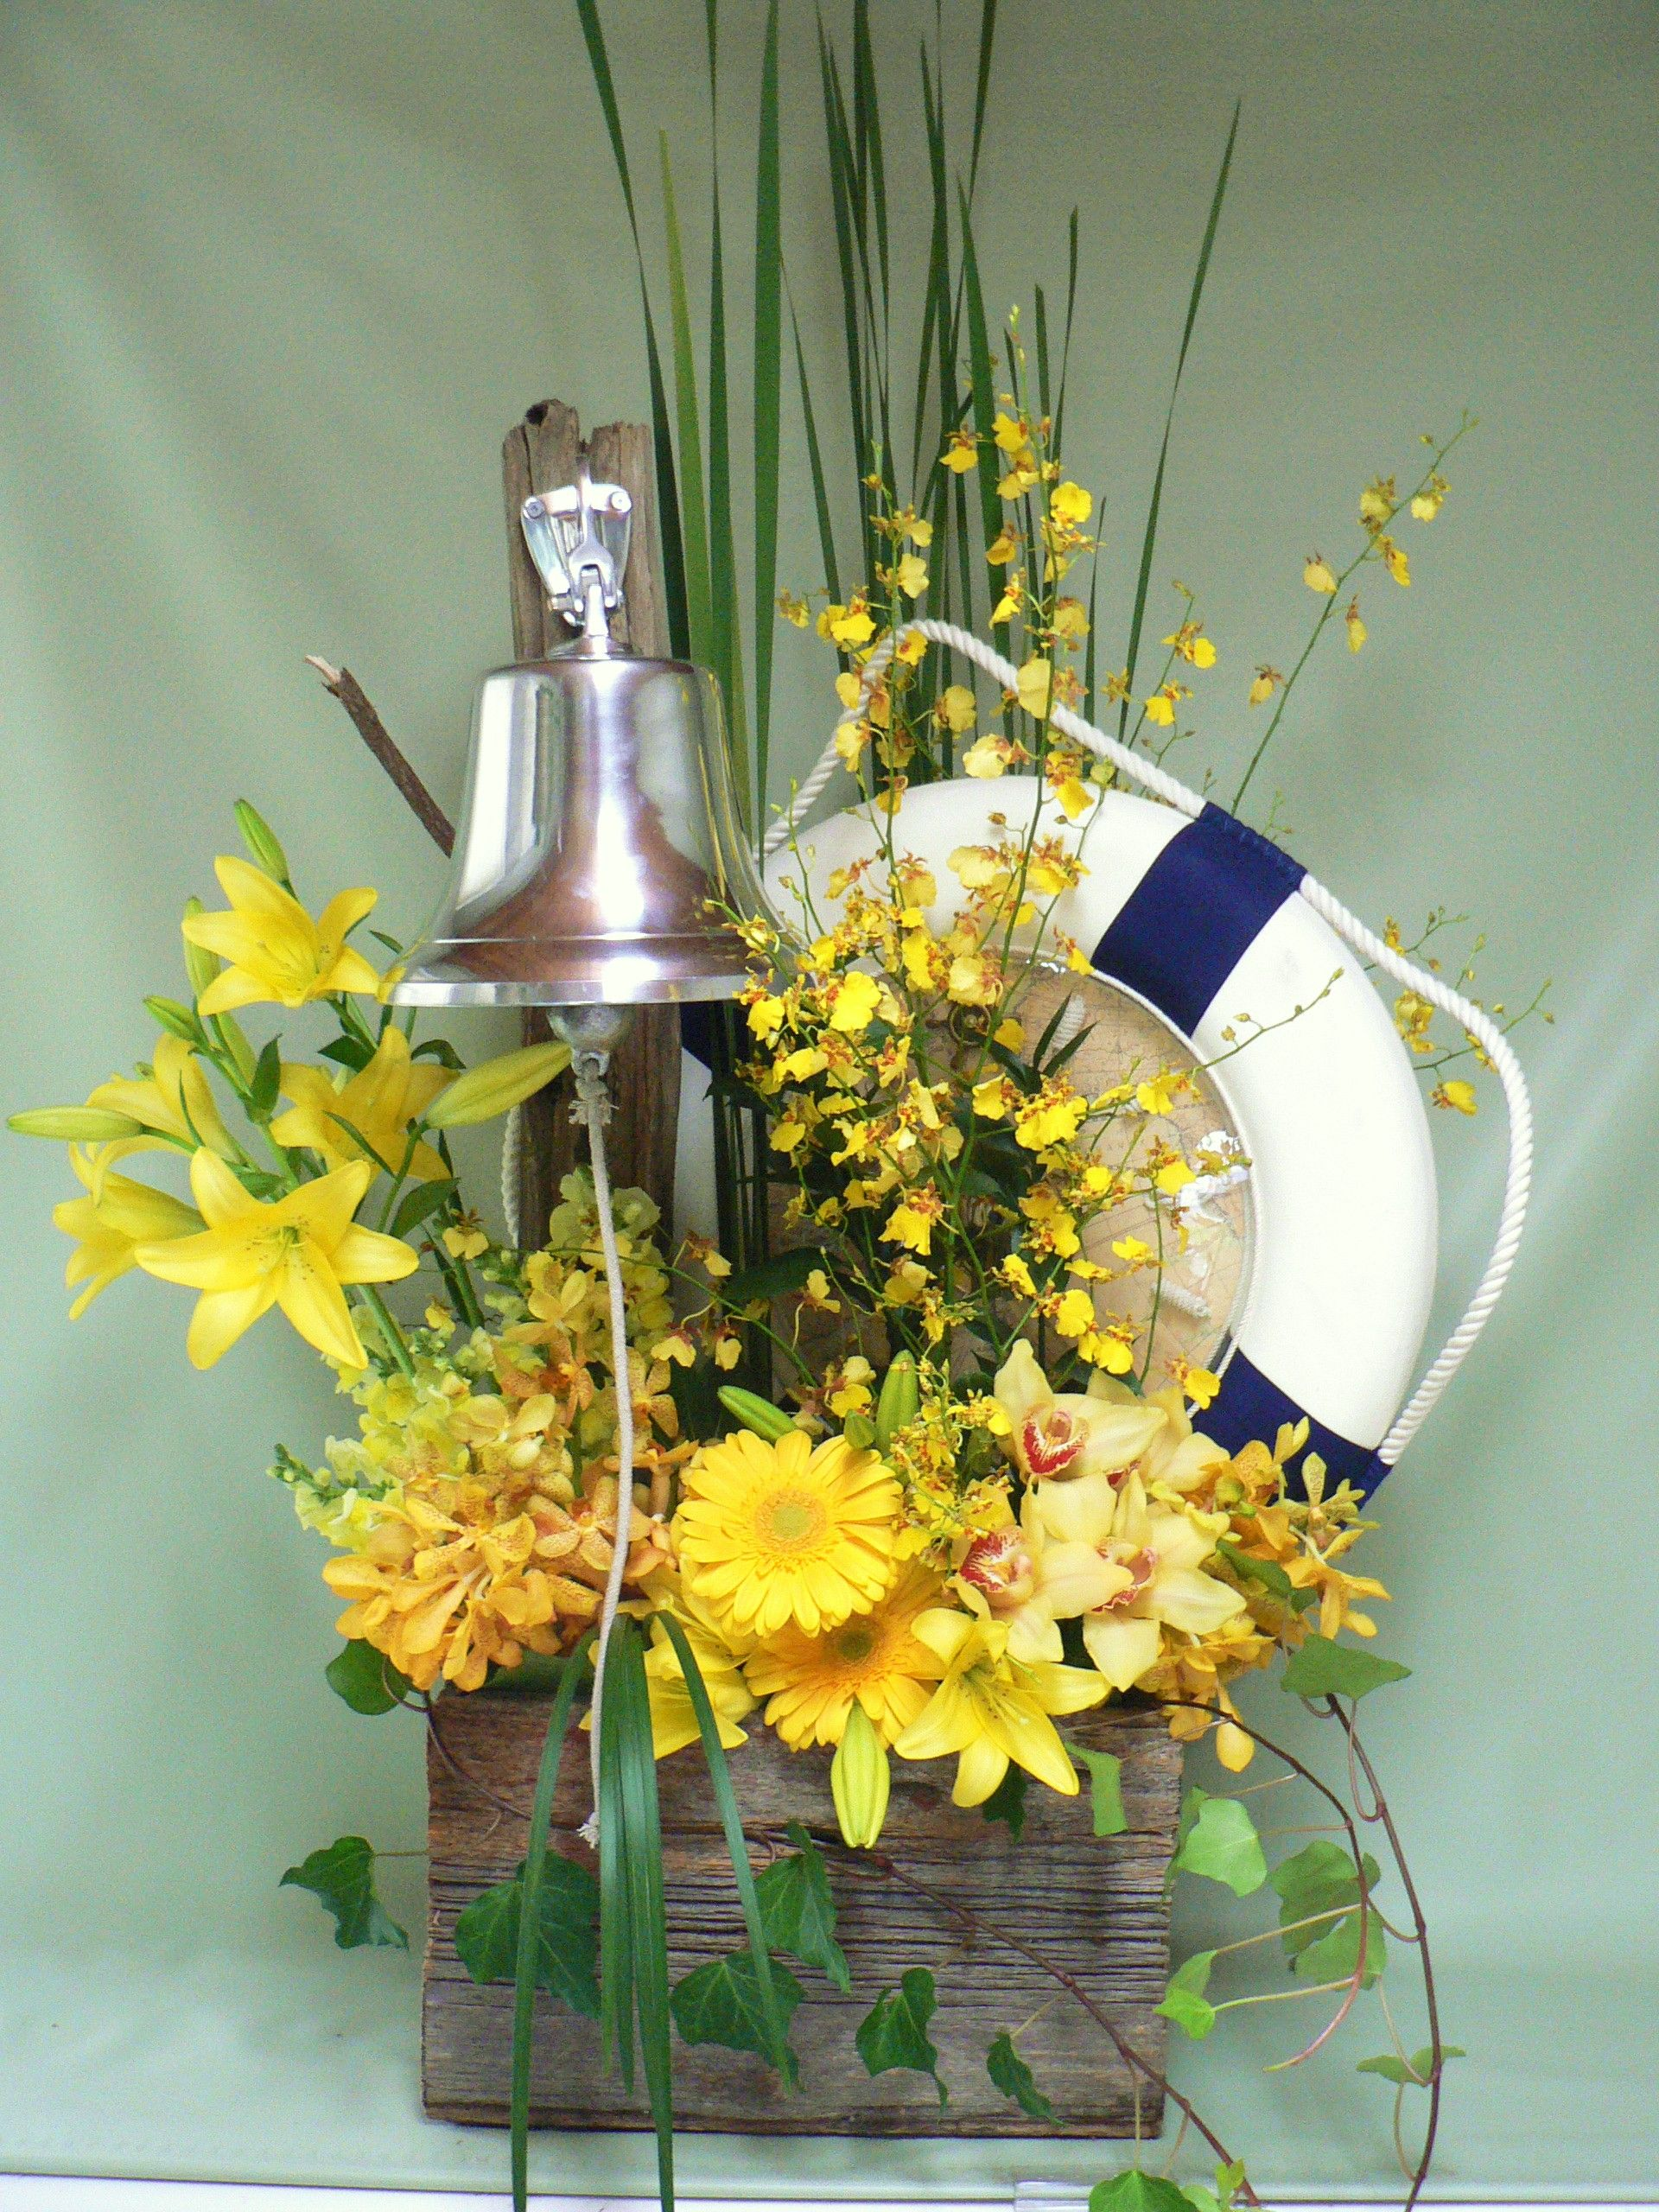 Nautical themed sympathy arrangement mill street florist nautical themed sympathy arrangement mill street florist dhlflorist Choice Image